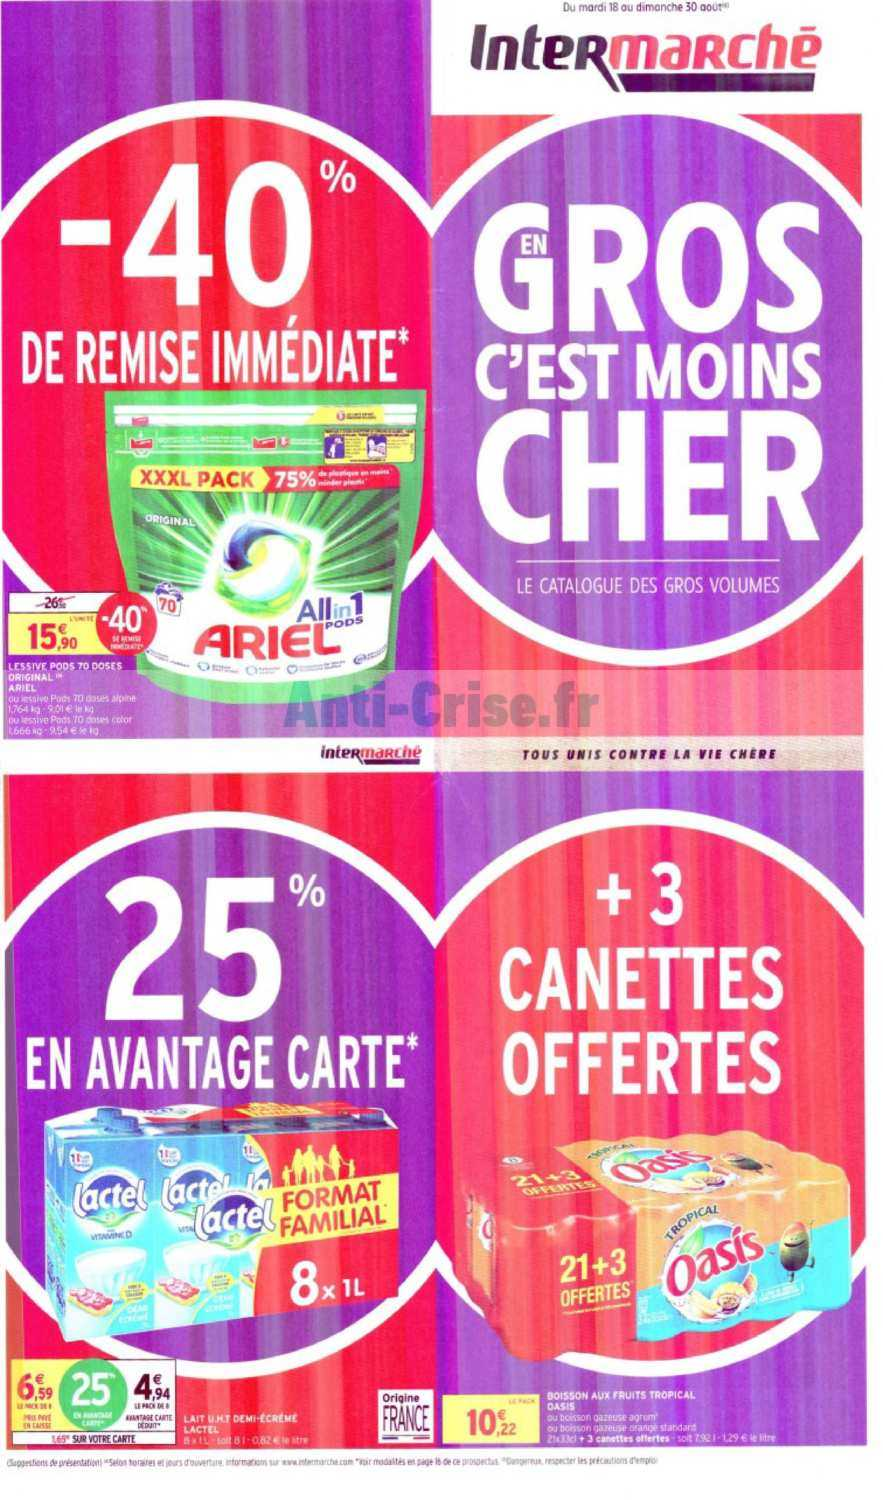 https://media.anti-crise.fr/2020/08/aout2020intermarche1808202030082020S0C0gros-Volumes-1-177x300.jpg